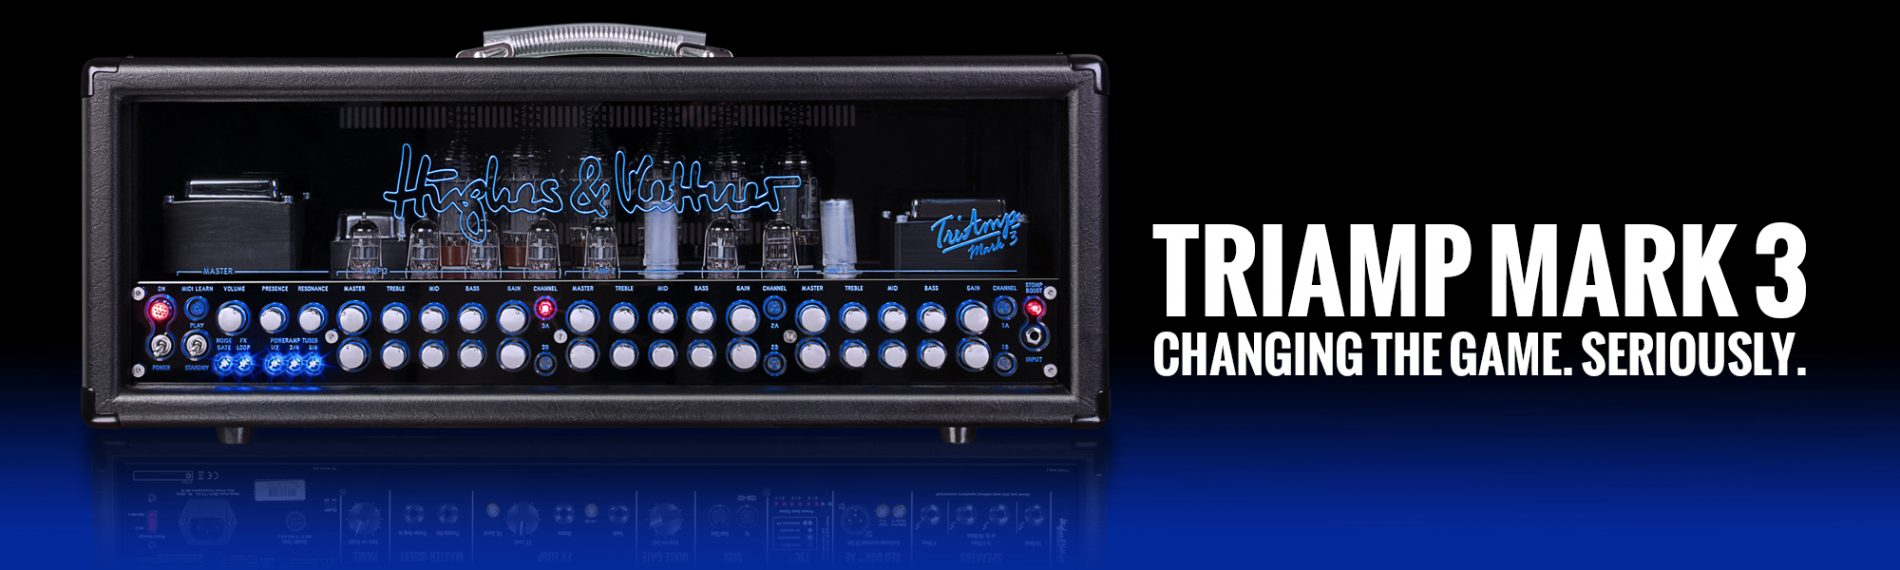 TriAmp Mark 3